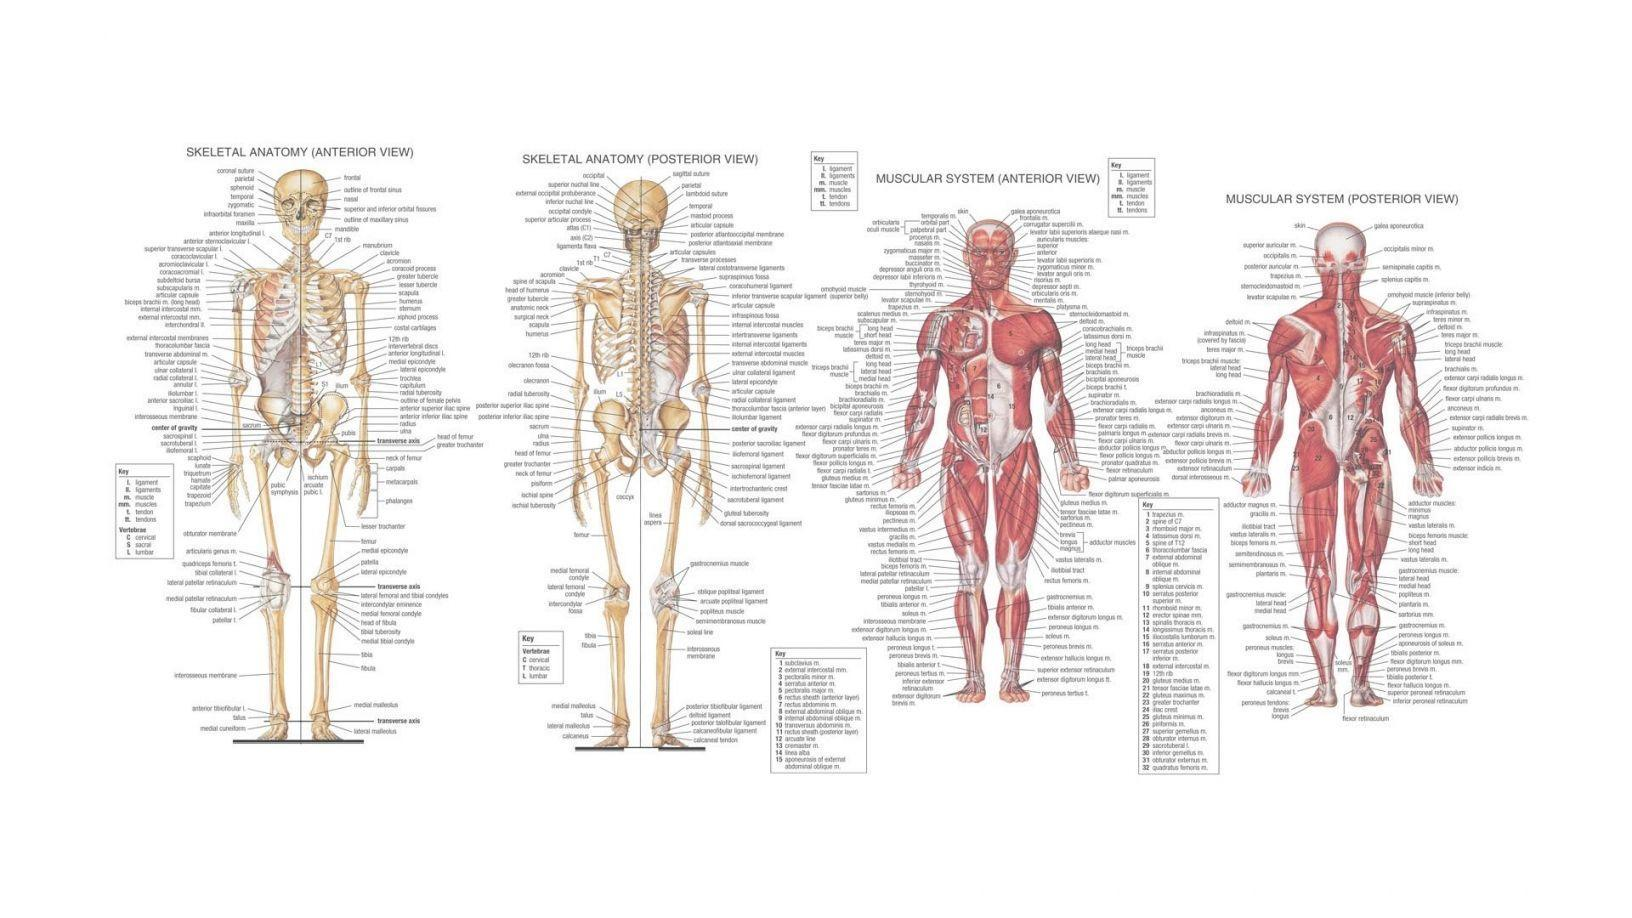 Postmortem Of Human Body Wallpapers   Wallpapers HD (High Difinition)